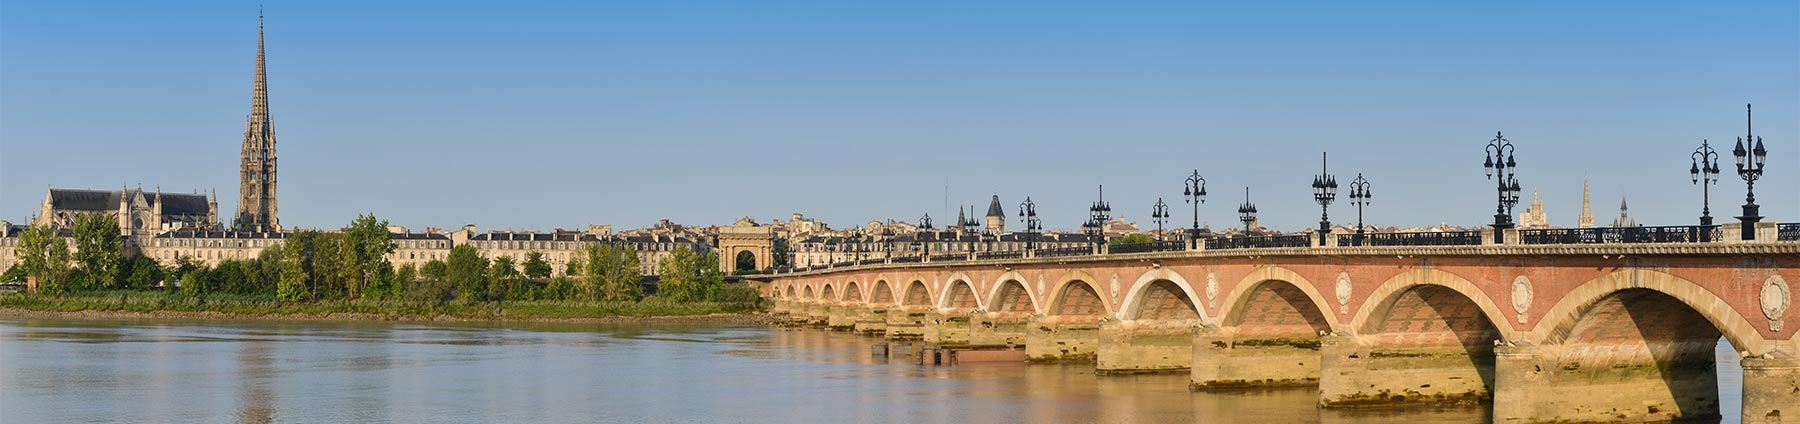 Gironde River Cruises